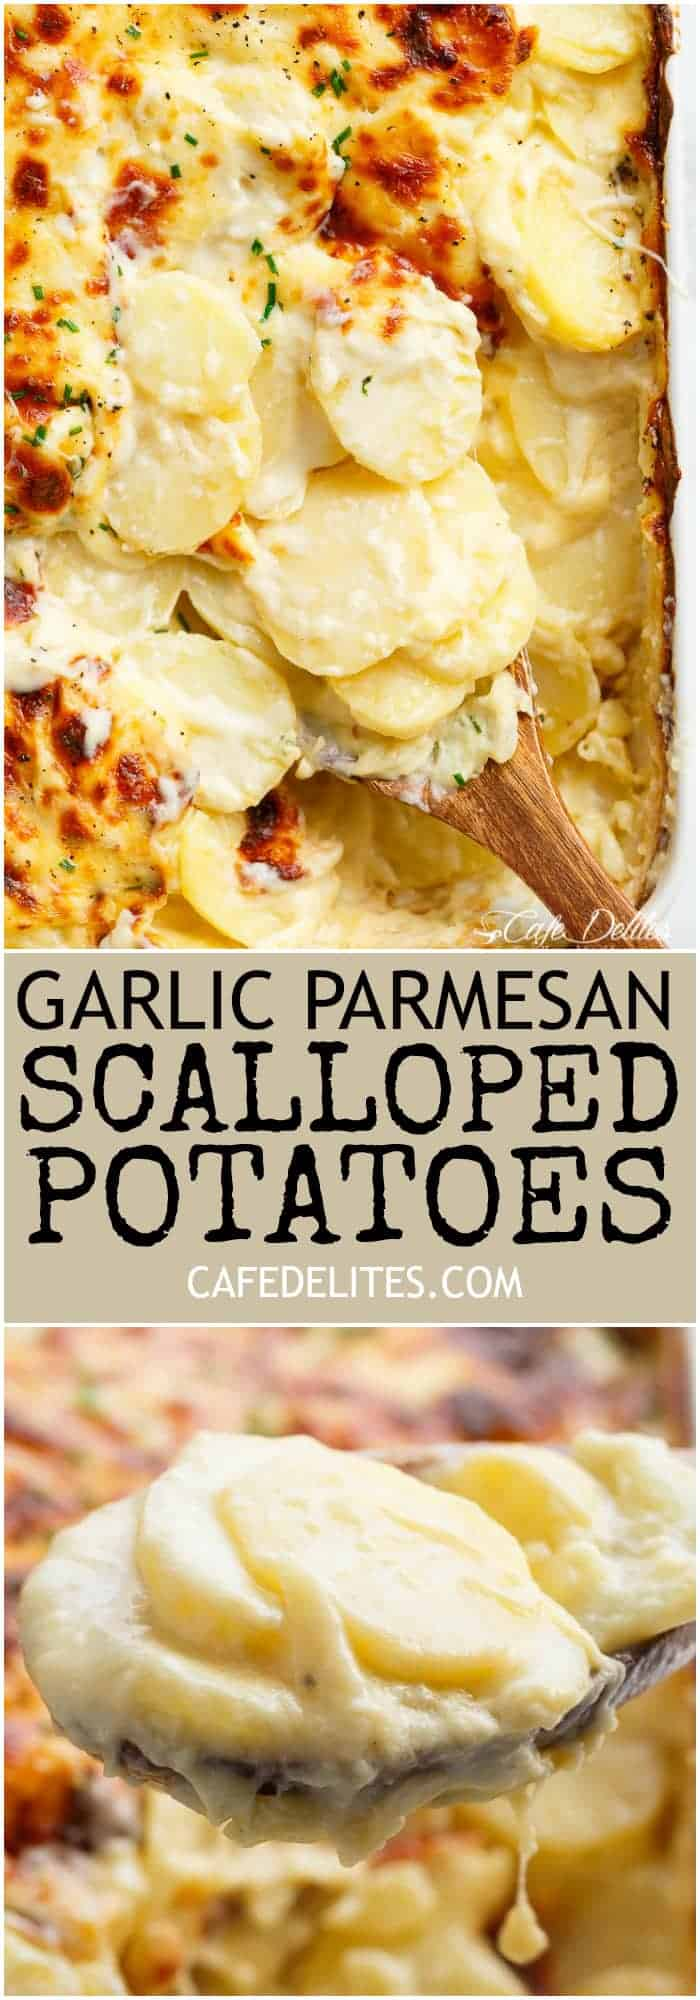 Exceptional Garlic Parmesan Scalloped Potatoes Layered Ken Mozzarella Is Garlic Parmesan Scalloped Potatoes Dirtygyro Garlic Parmesan Potatoes A Creamy Garlic Sauce Withparmesan Foil Garlic Parmesan P nice food Garlic Parmesan Potatoes